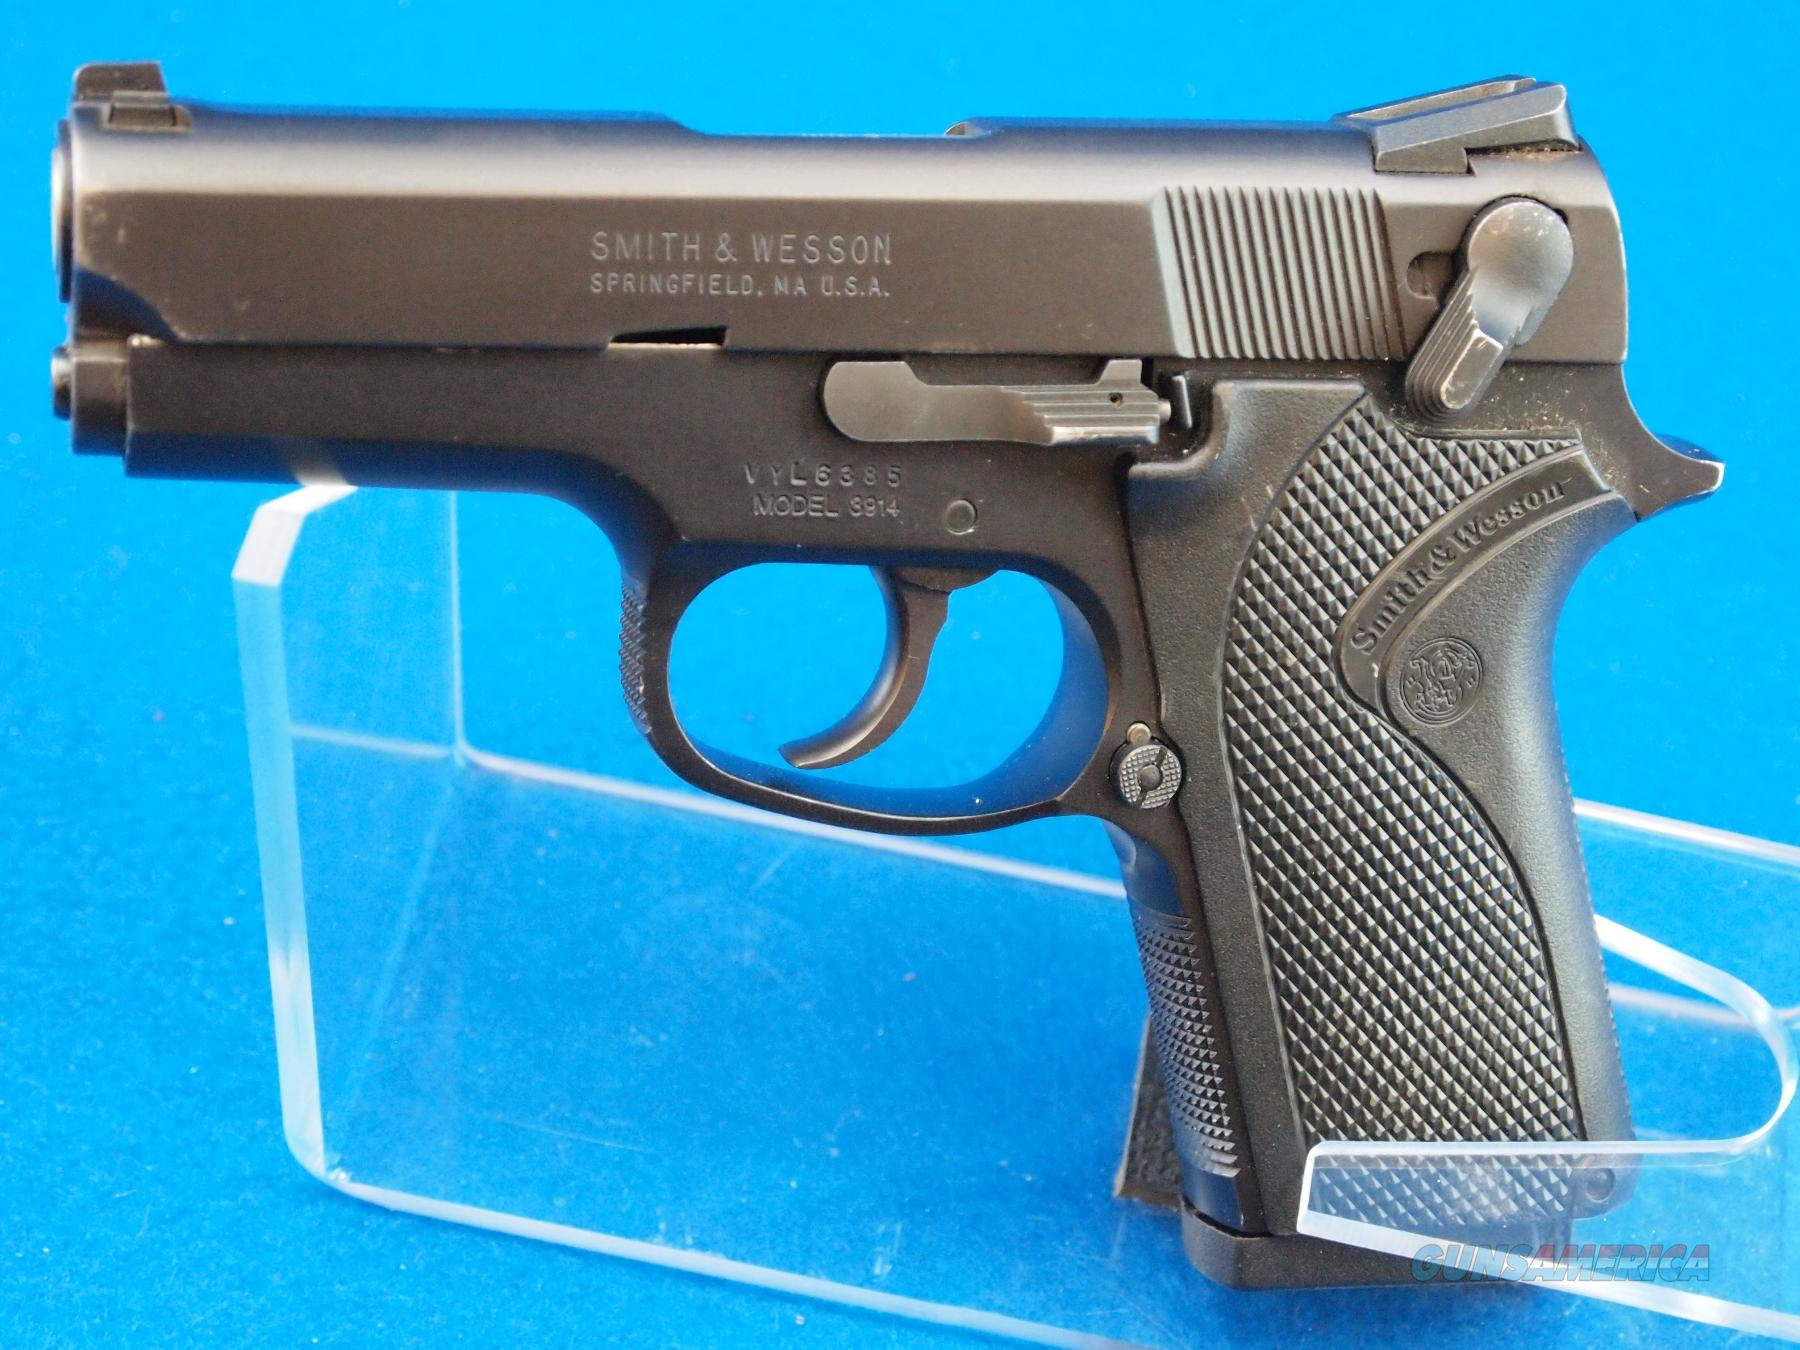 Smith & Wesson 3914    9MMm  Guns > Pistols > Smith & Wesson Pistols - Autos > Alloy Frame